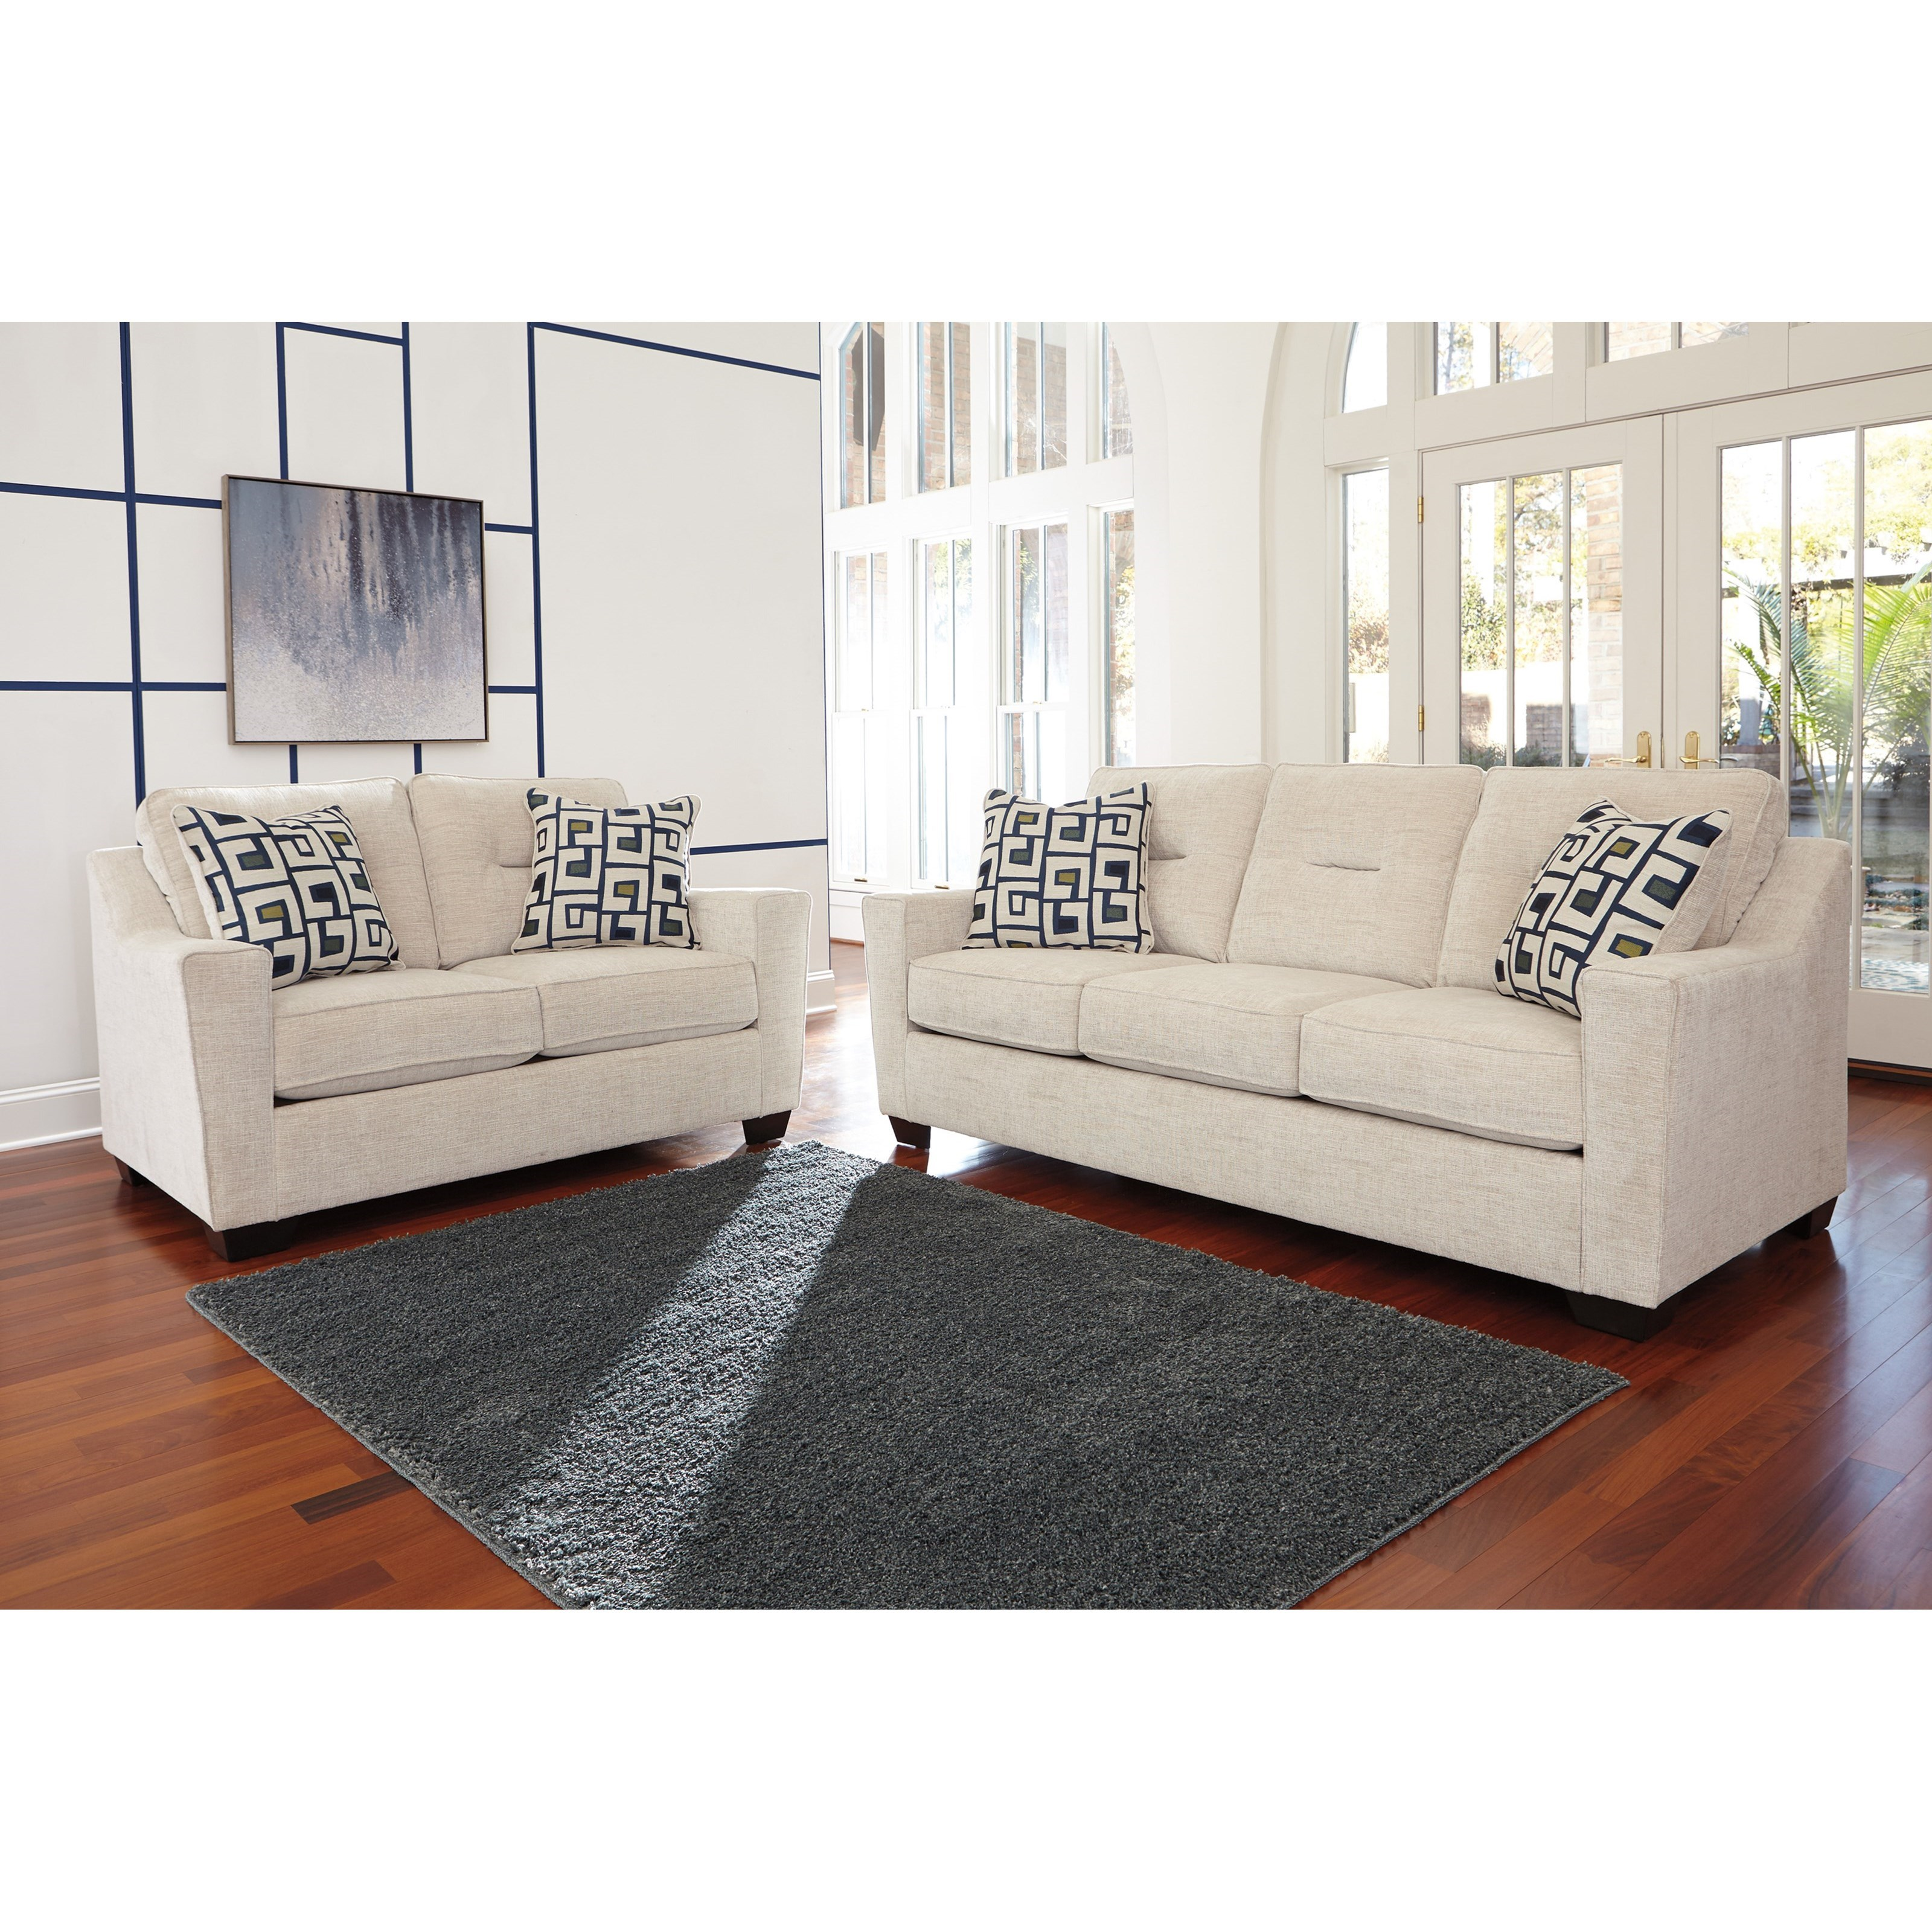 Ashley Furniture Cerdic Stationary Living Room Group - Item Number: 36400 Living Room Group 1